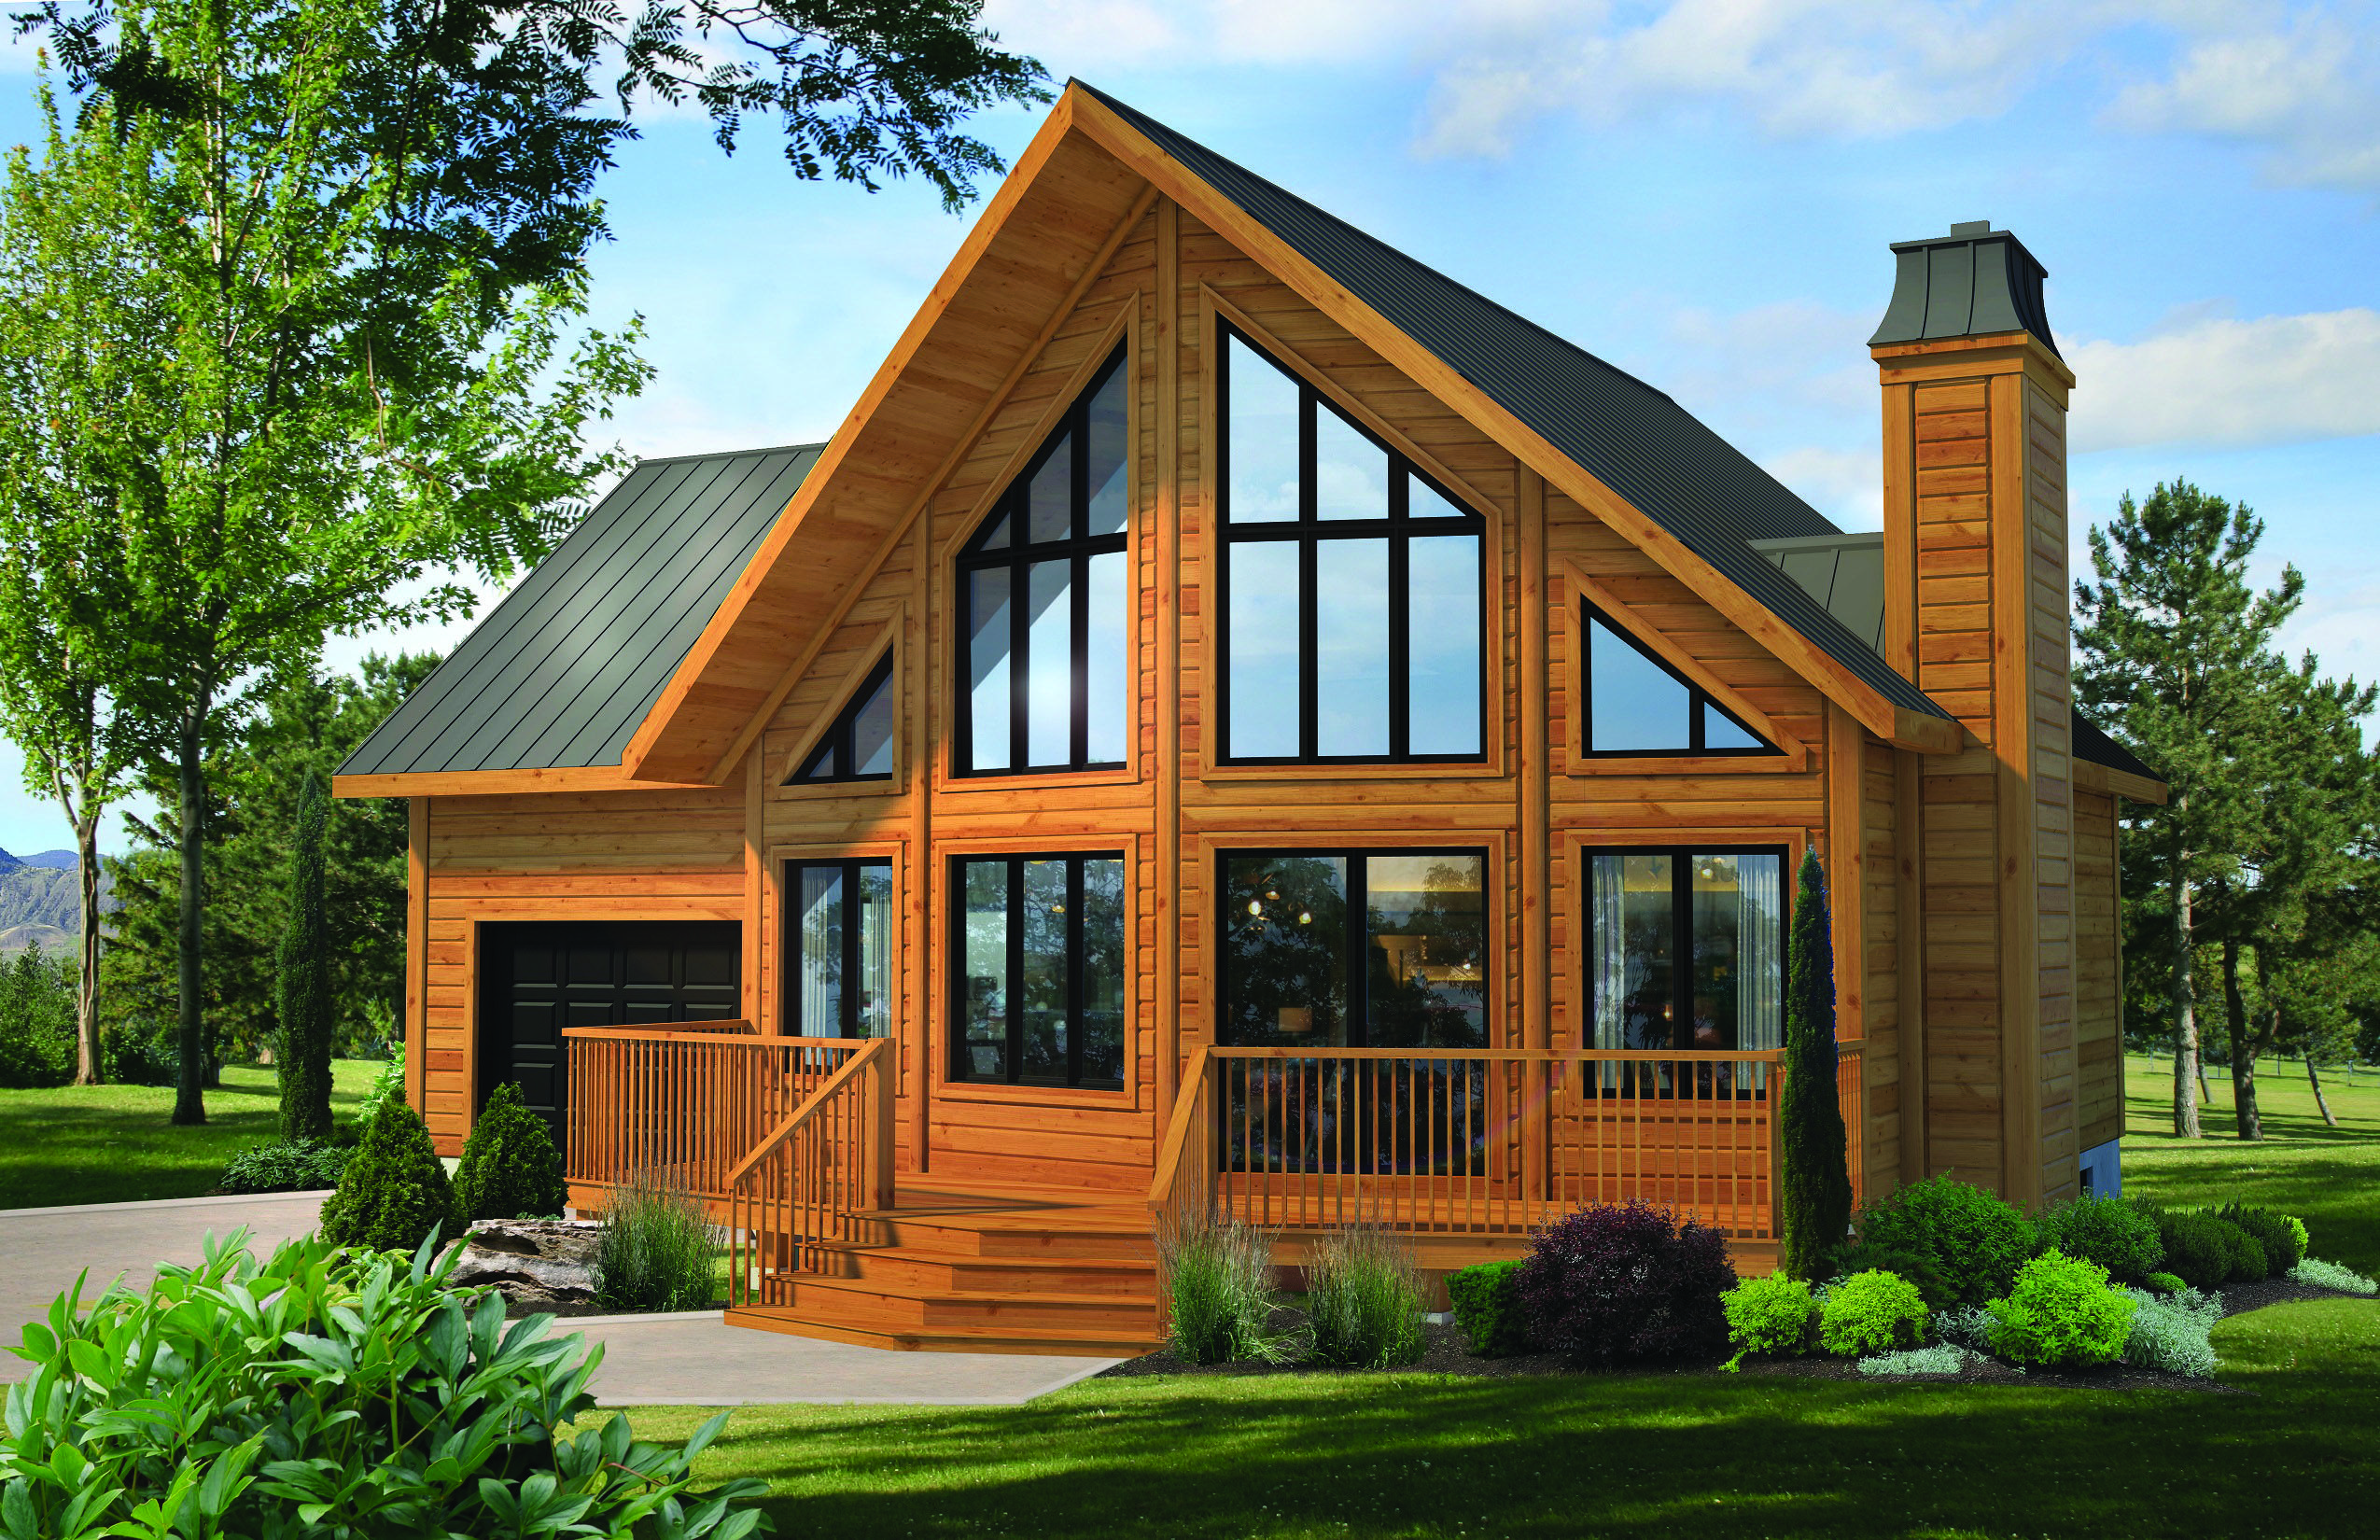 Classic Log Cabin Home Request A Quote In 2020 Cottage Plan Barn House Plans Craftsman House Plans